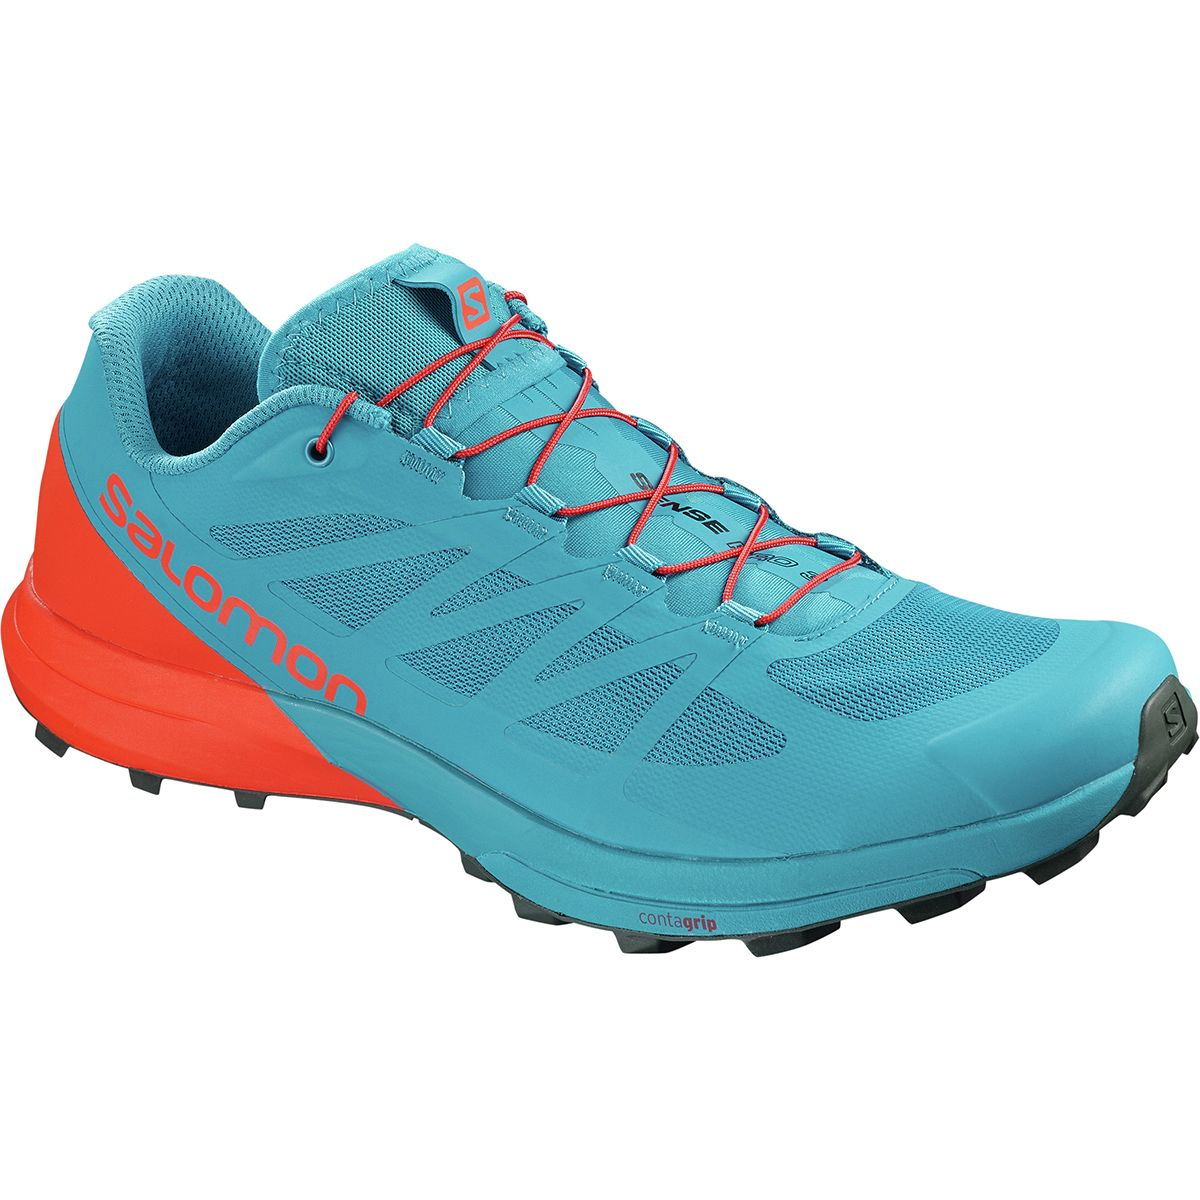 Salomon Sense Pro 3 Trail Running Shoe Men's |